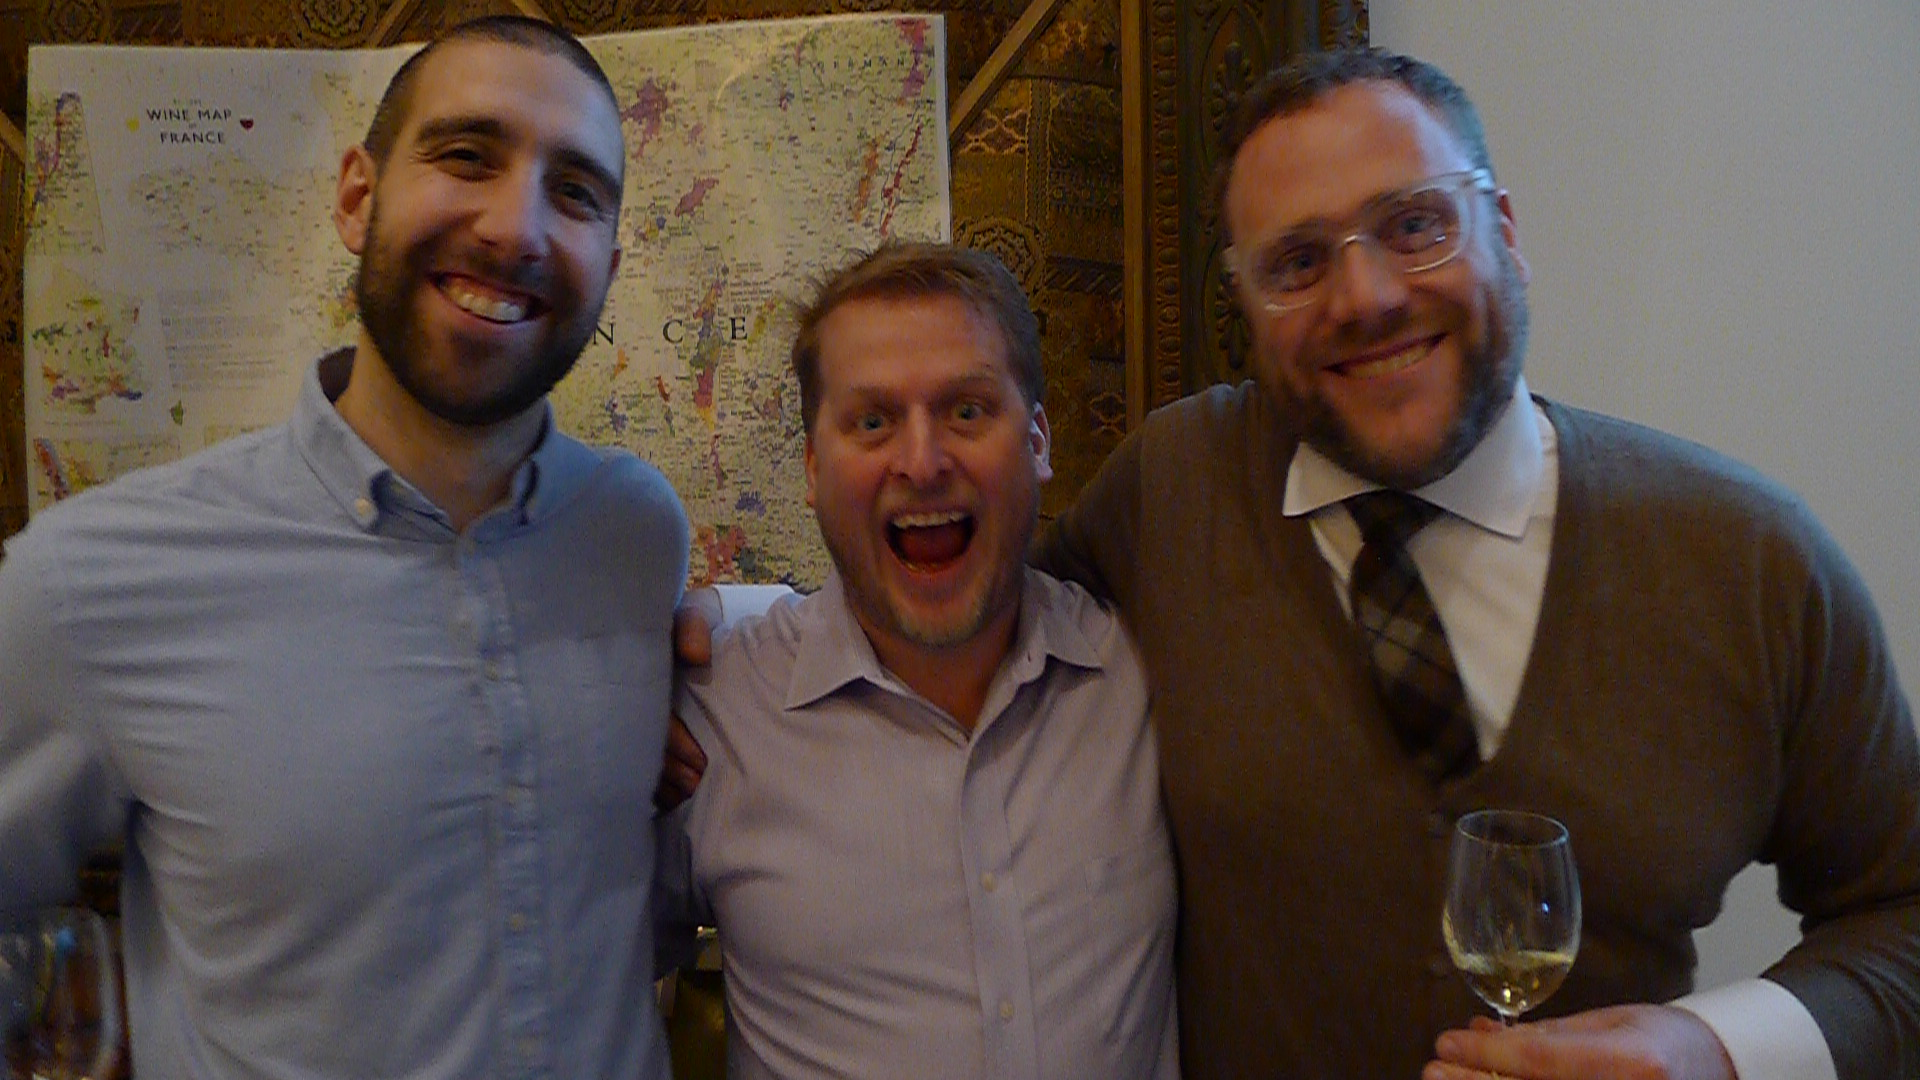 Sam Mellanson (The Somm Factory), Bruce Walner MS (The Somm Factory), and Mark Coster (Noble Estates).